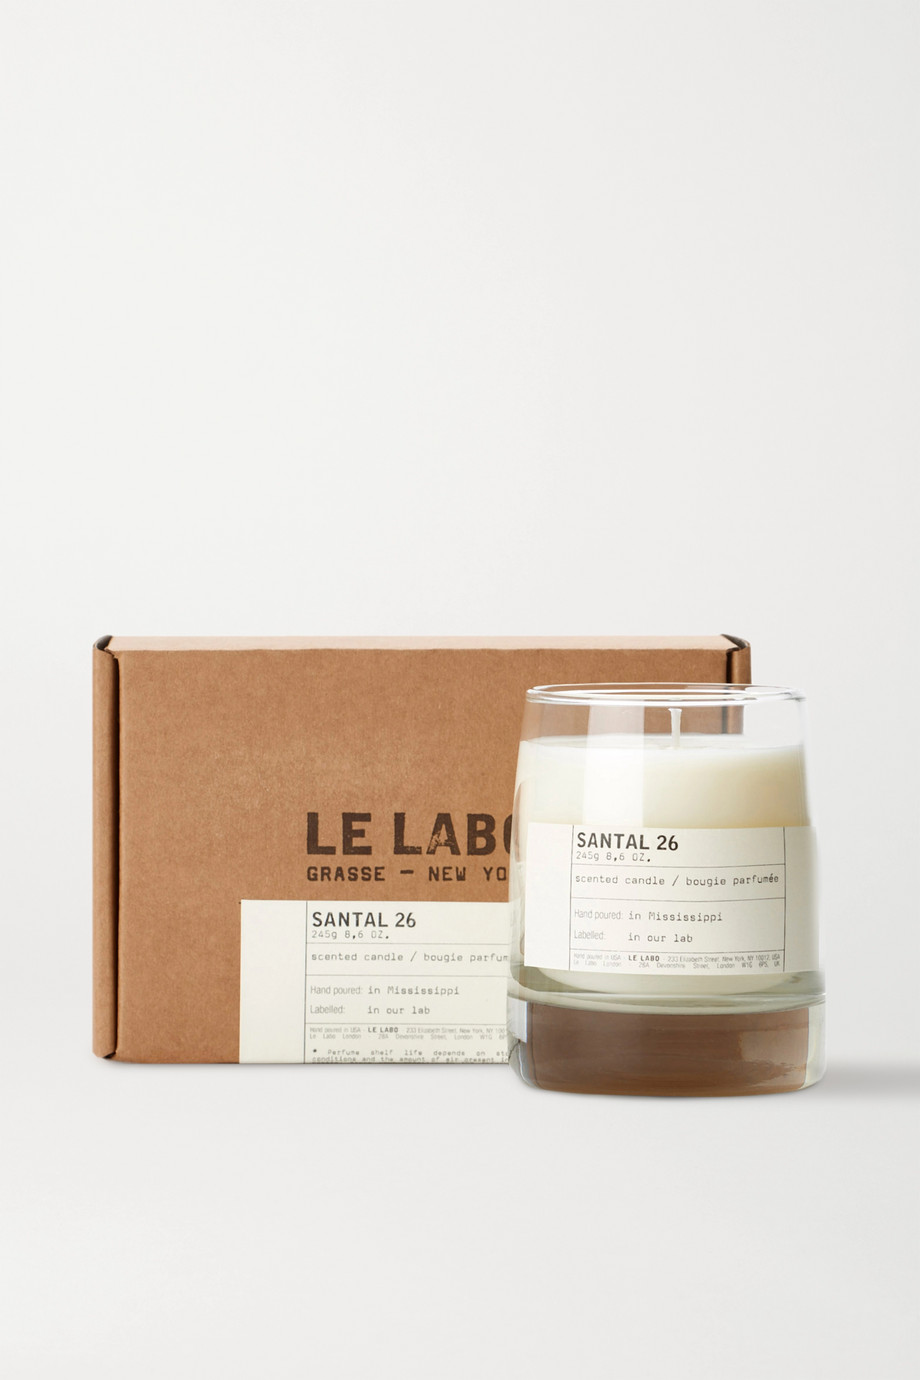 Le Labo Santal 26 scented candle, 245g